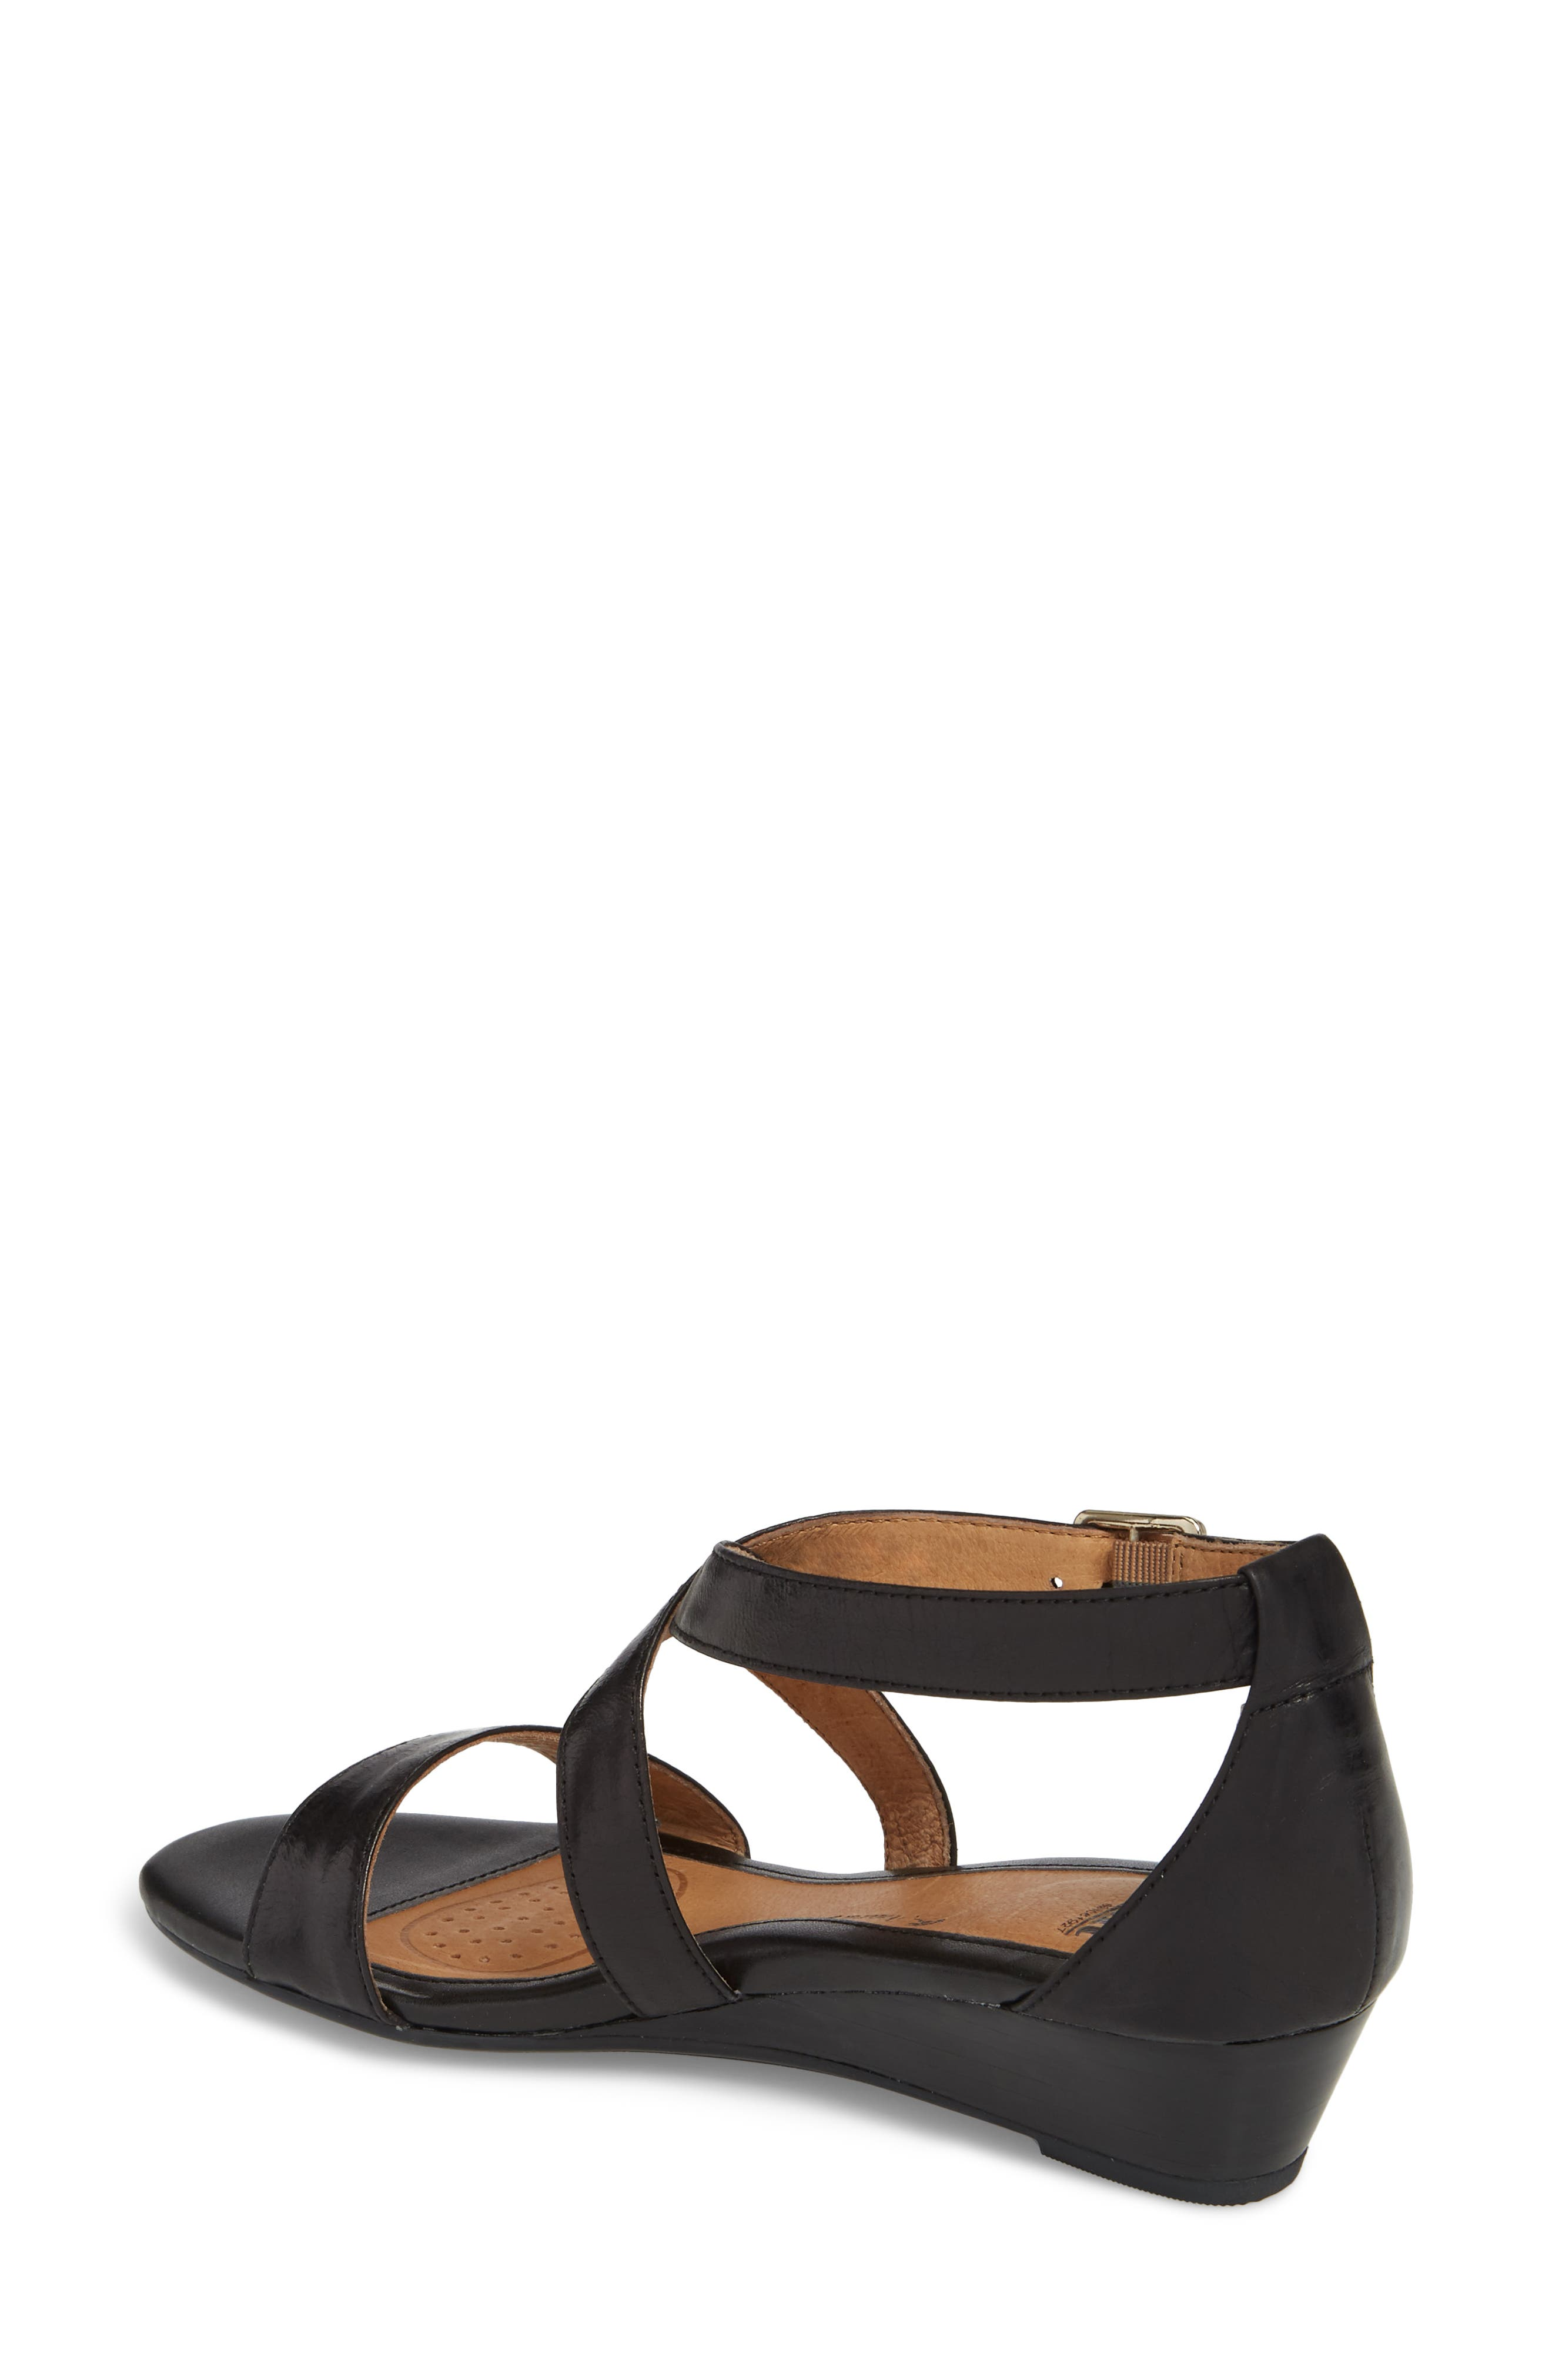 'Innis' Low Wedge Sandal,                             Alternate thumbnail 14, color,